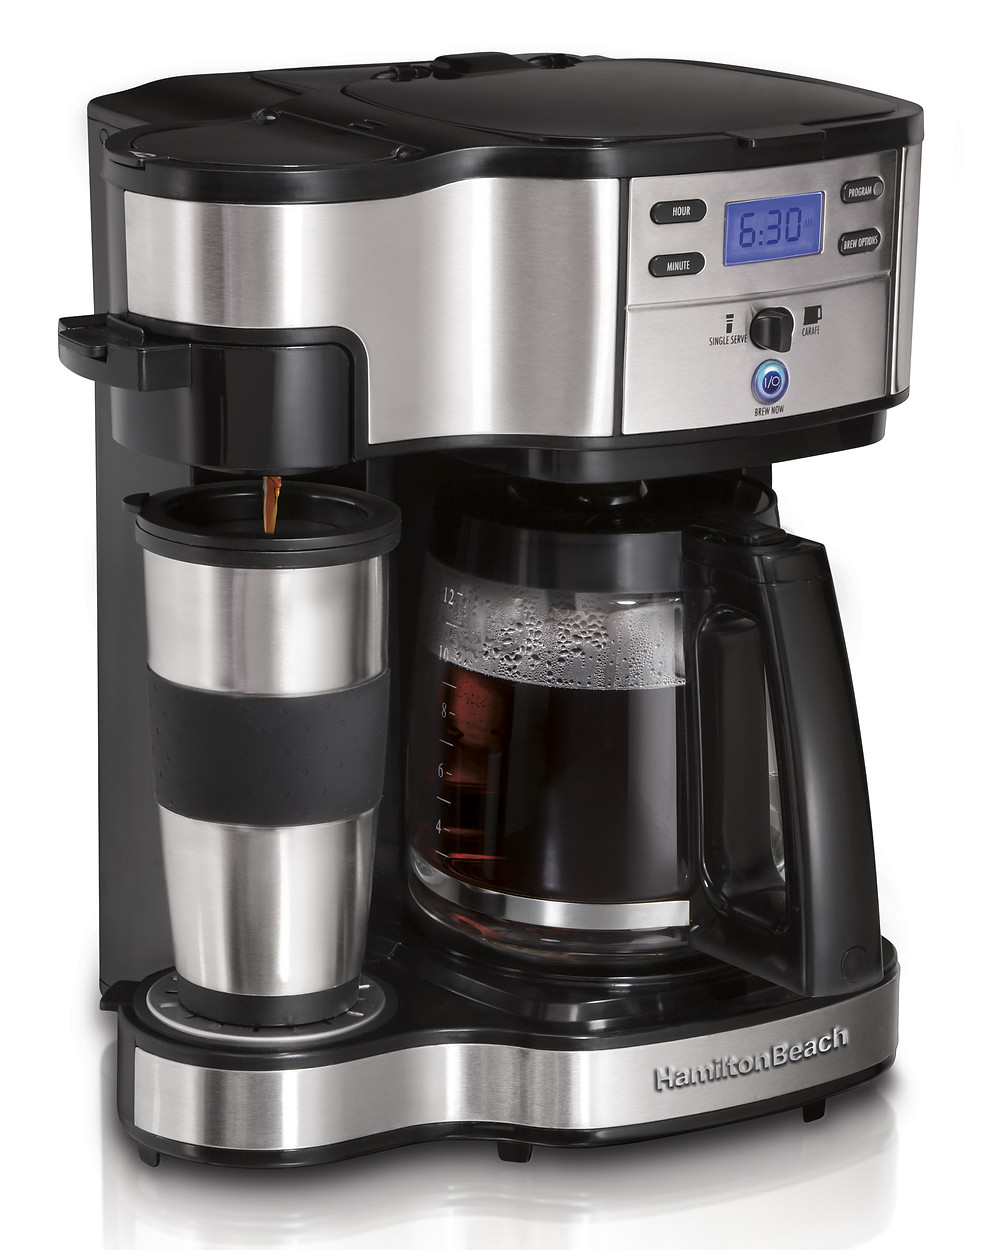 Hamilton Beach 2 Way Coffee Maker From Target